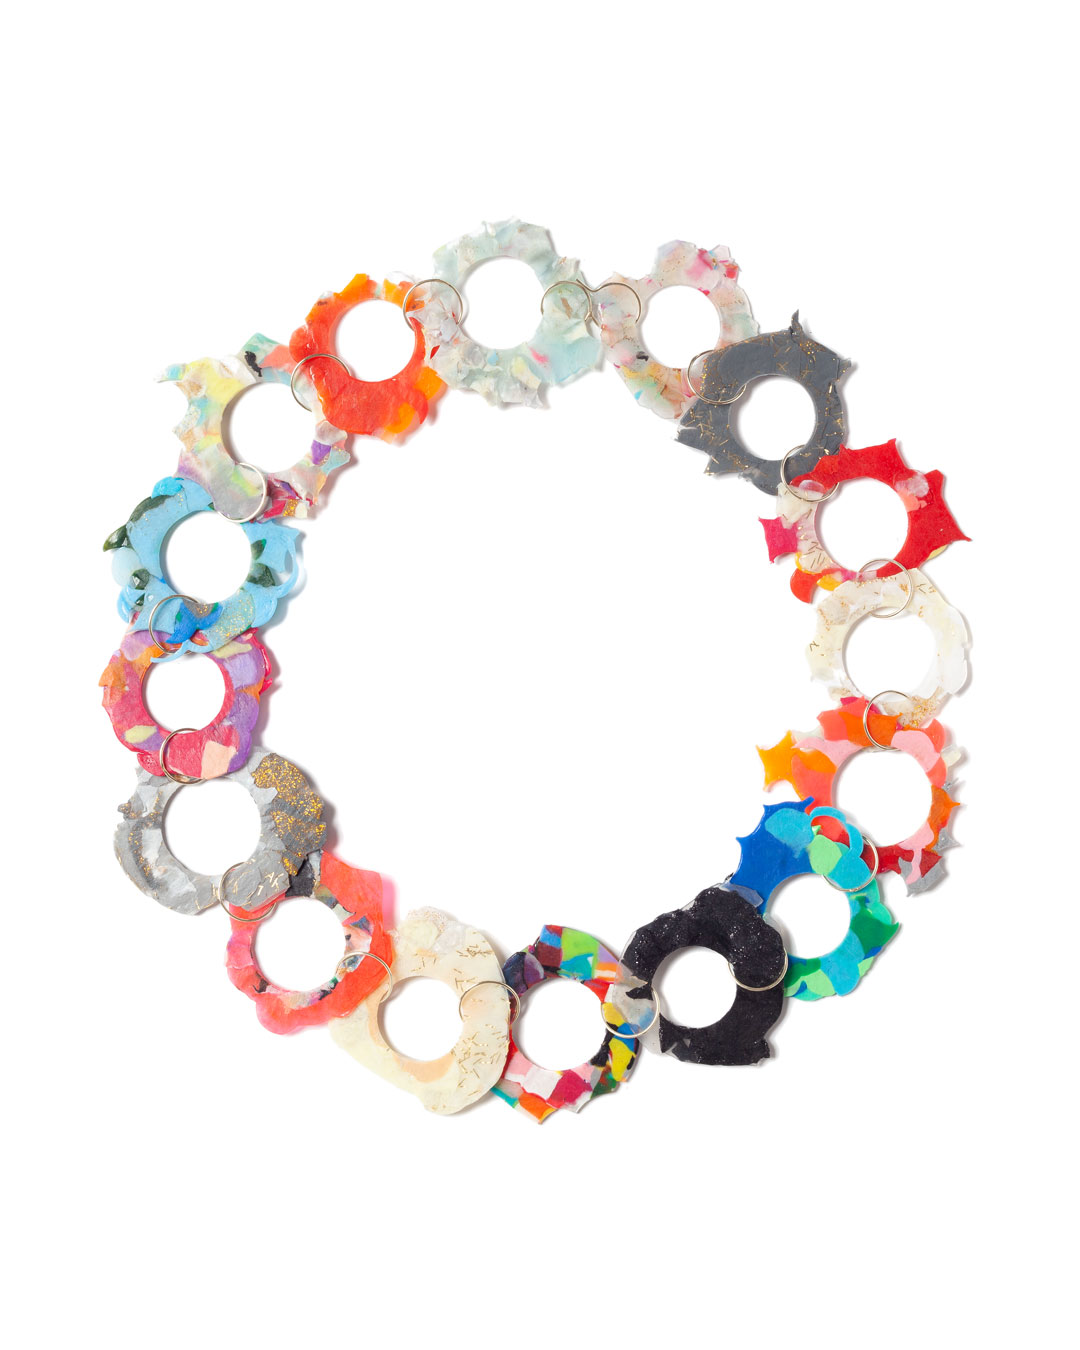 Karola Torkos, Blotty, 2020, necklace; recycled plastic, 14ct gold, L 600 mm, €560